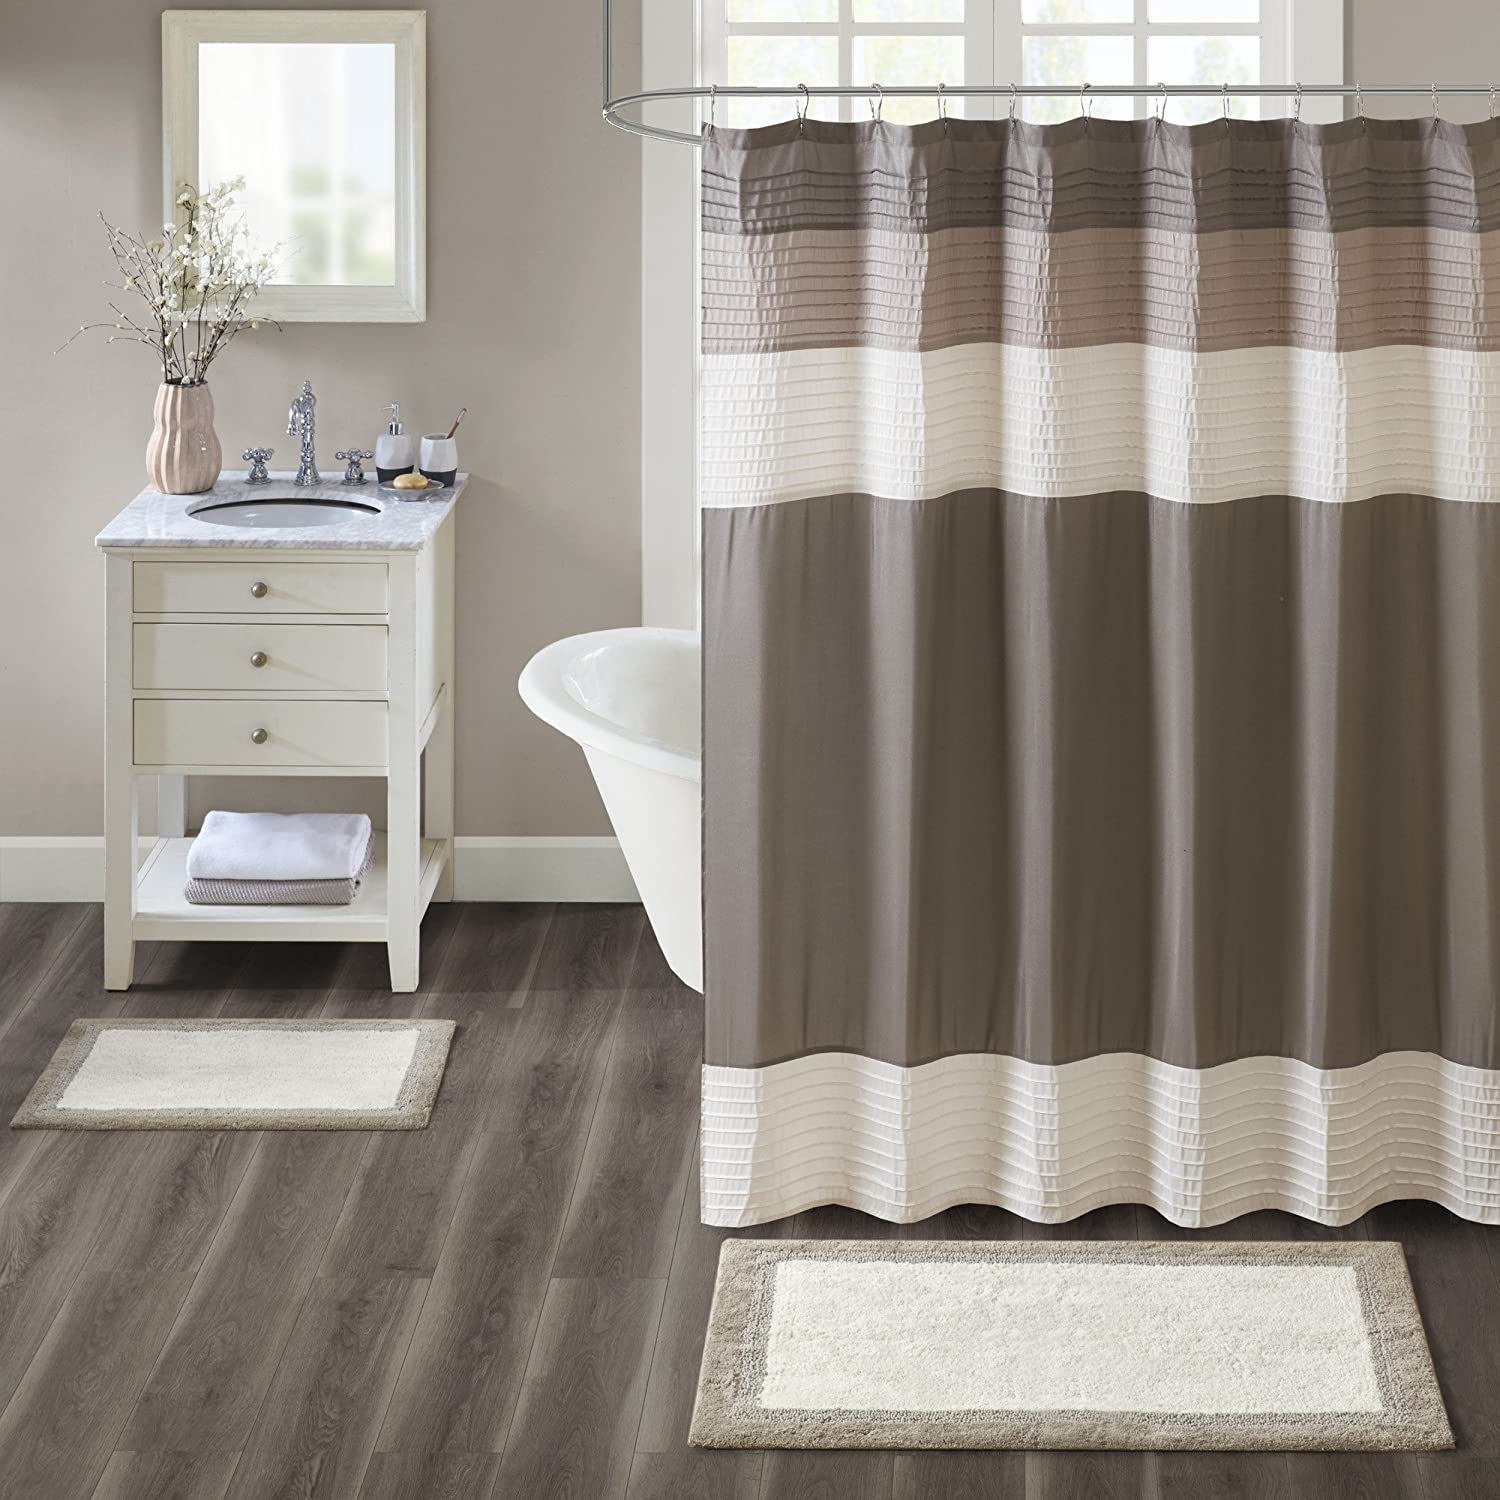 Madison Park Amherst Bathroom Rugs Room Décor 100% Cotton Tufted Ultra Soft Non-Slip, Absorbent Quick Dry Bathtub Mats, 27x45, Taupe